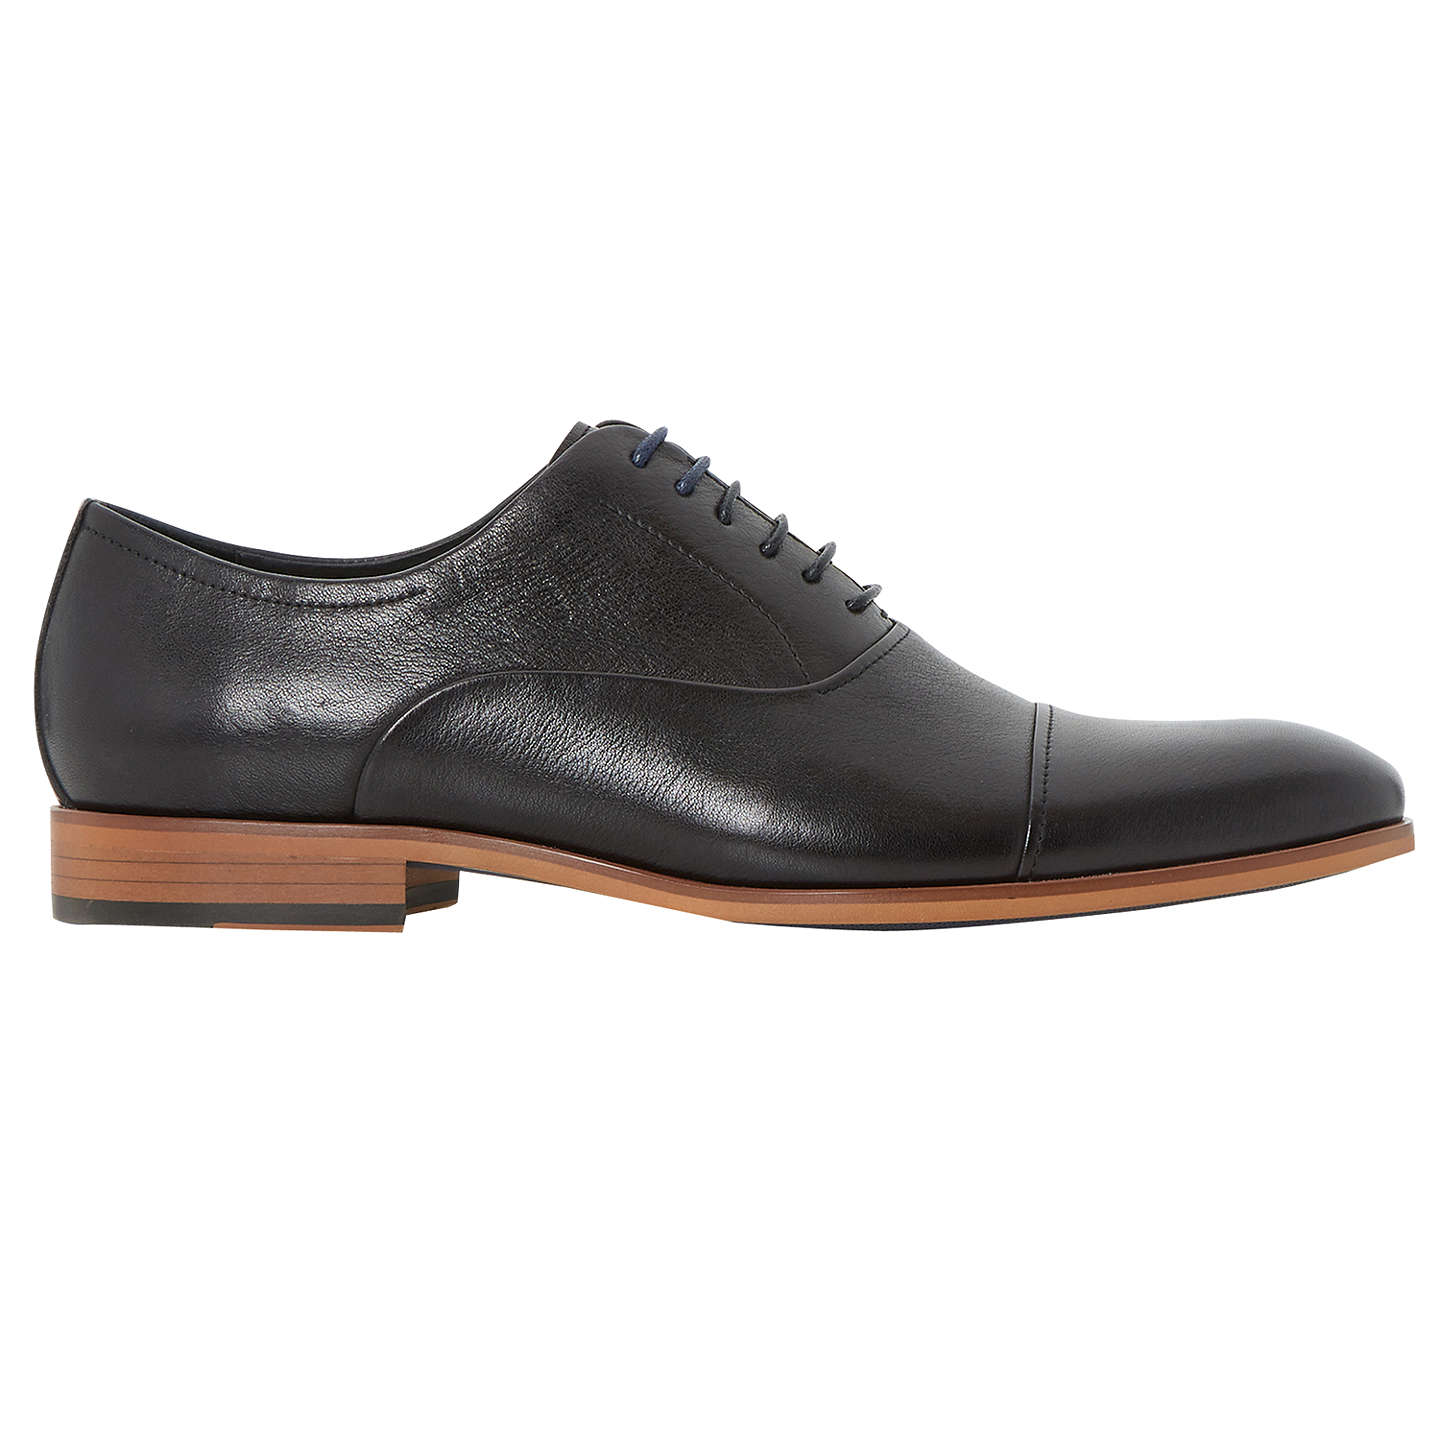 BuyDune Padstow Oxford Shoes, Black, 7 Online at johnlewis.com